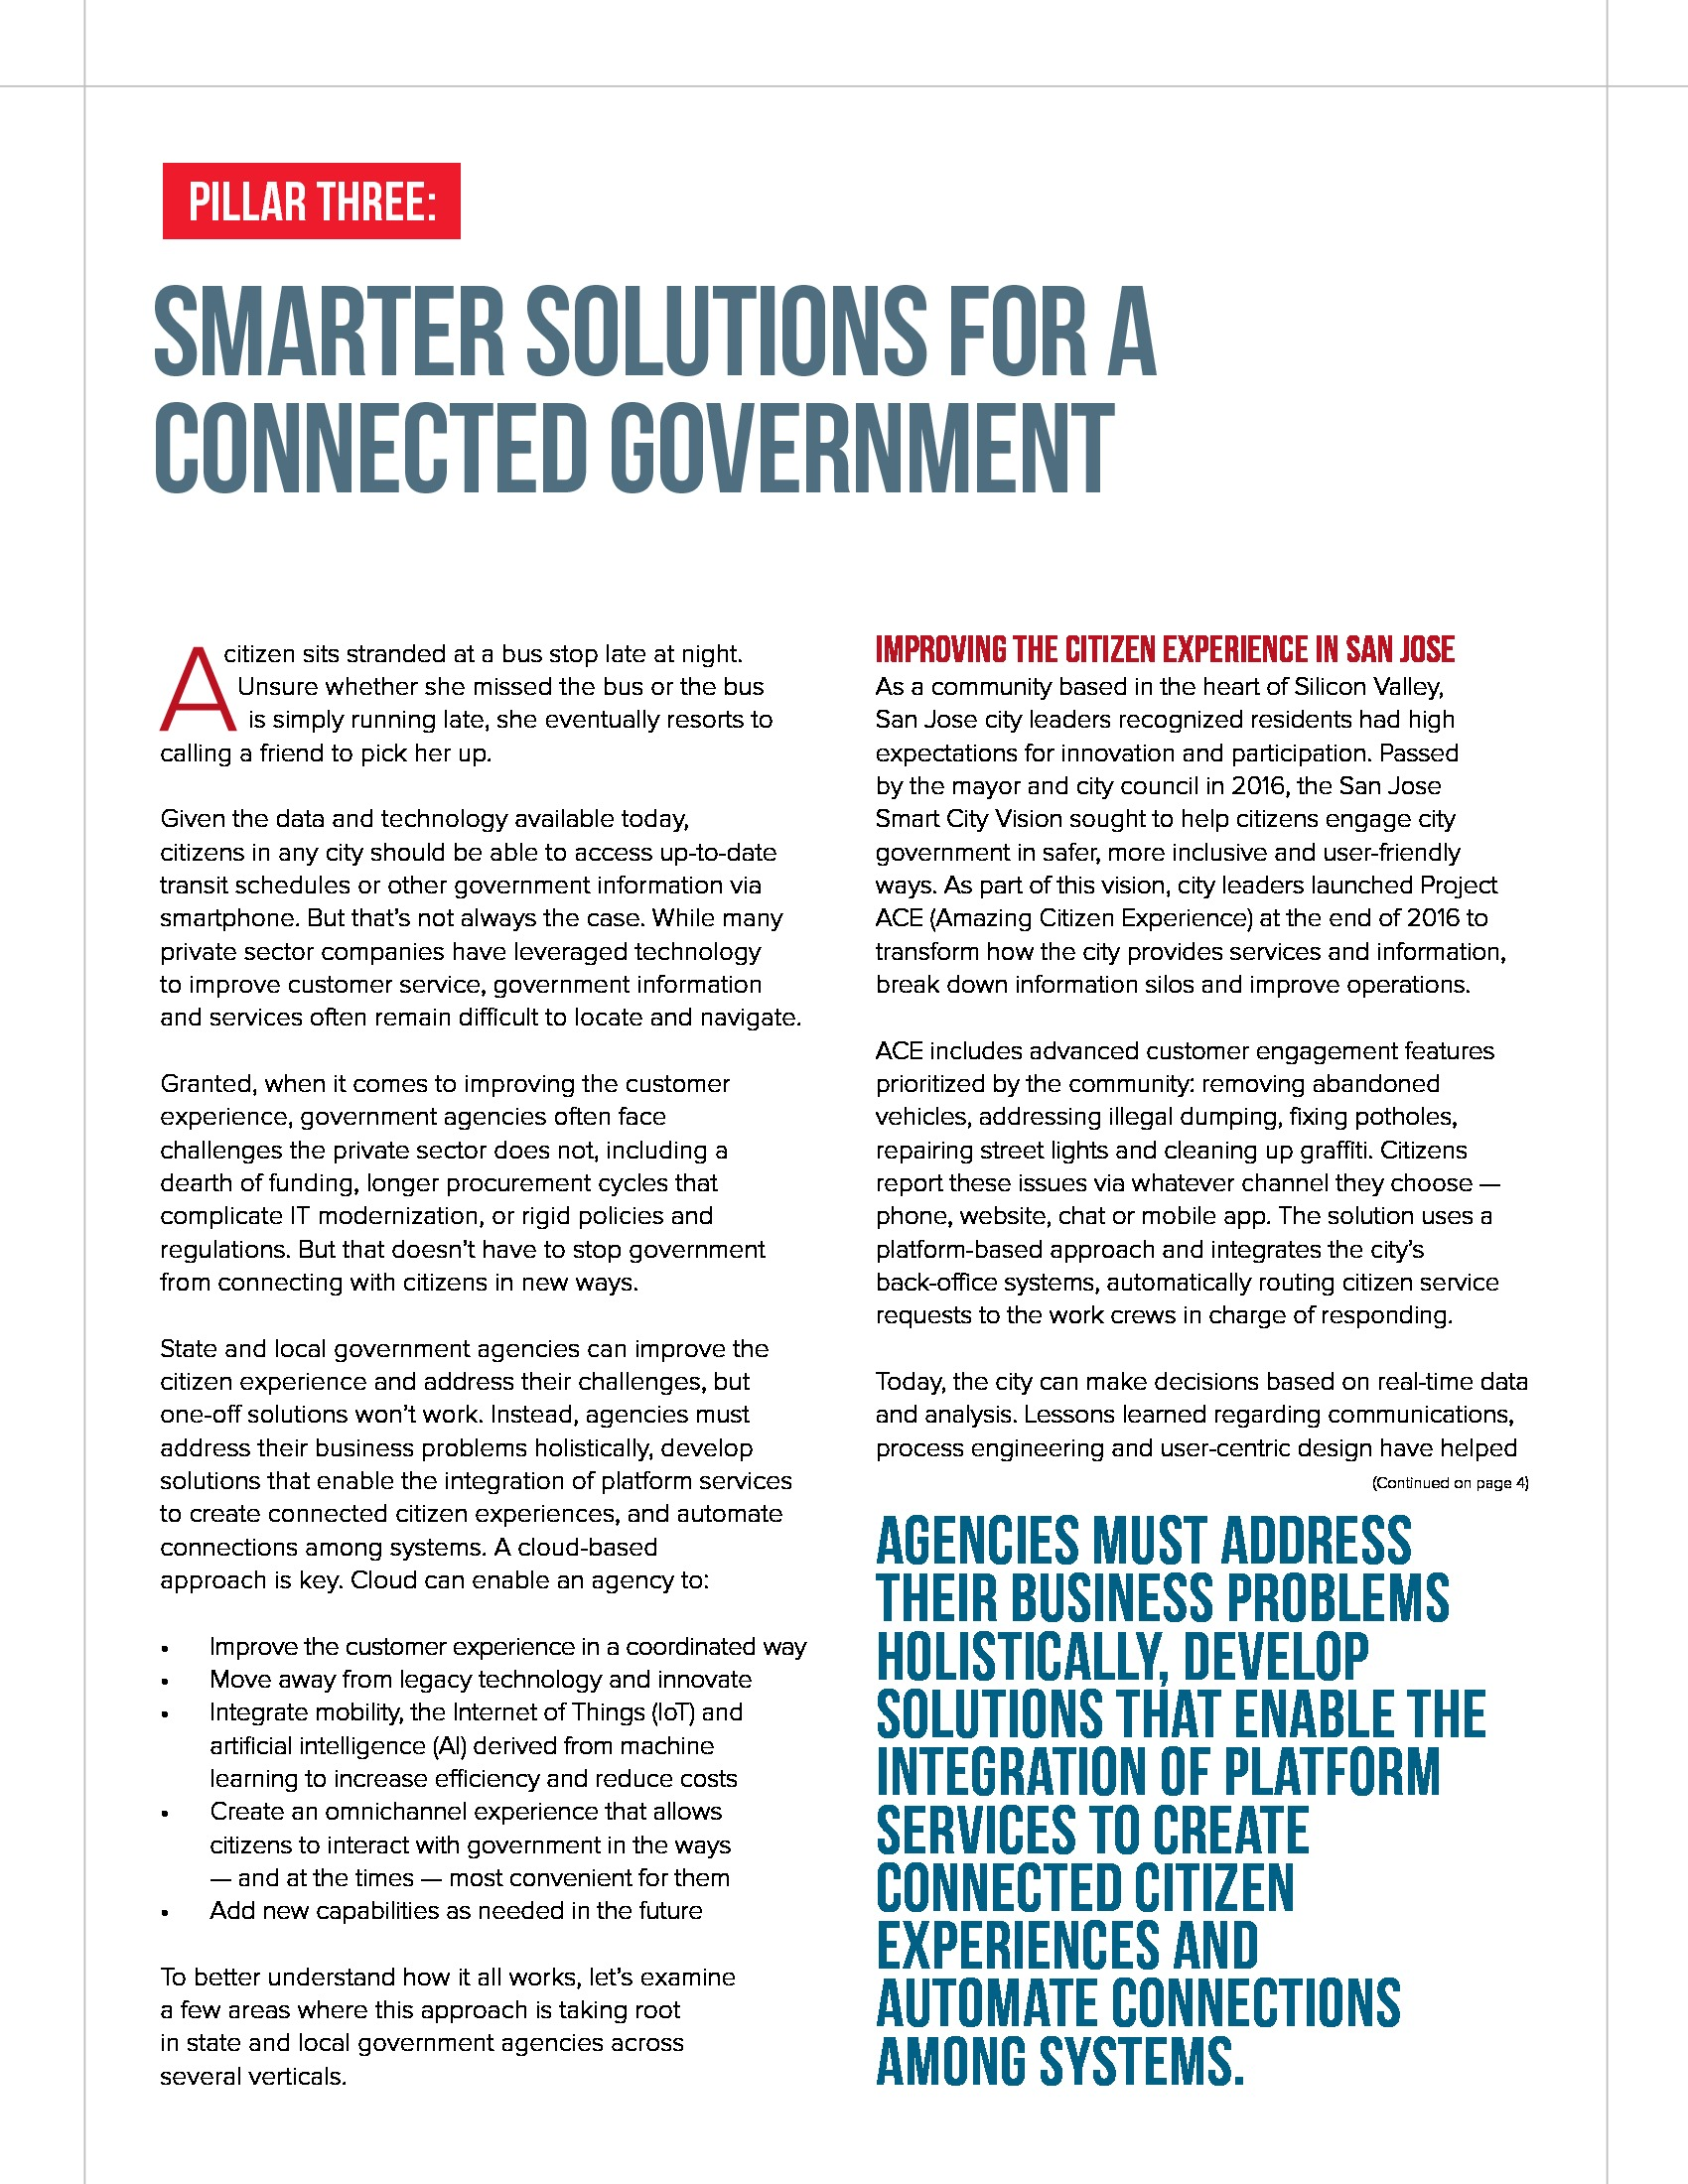 Smarter Solutions for a Connected Government